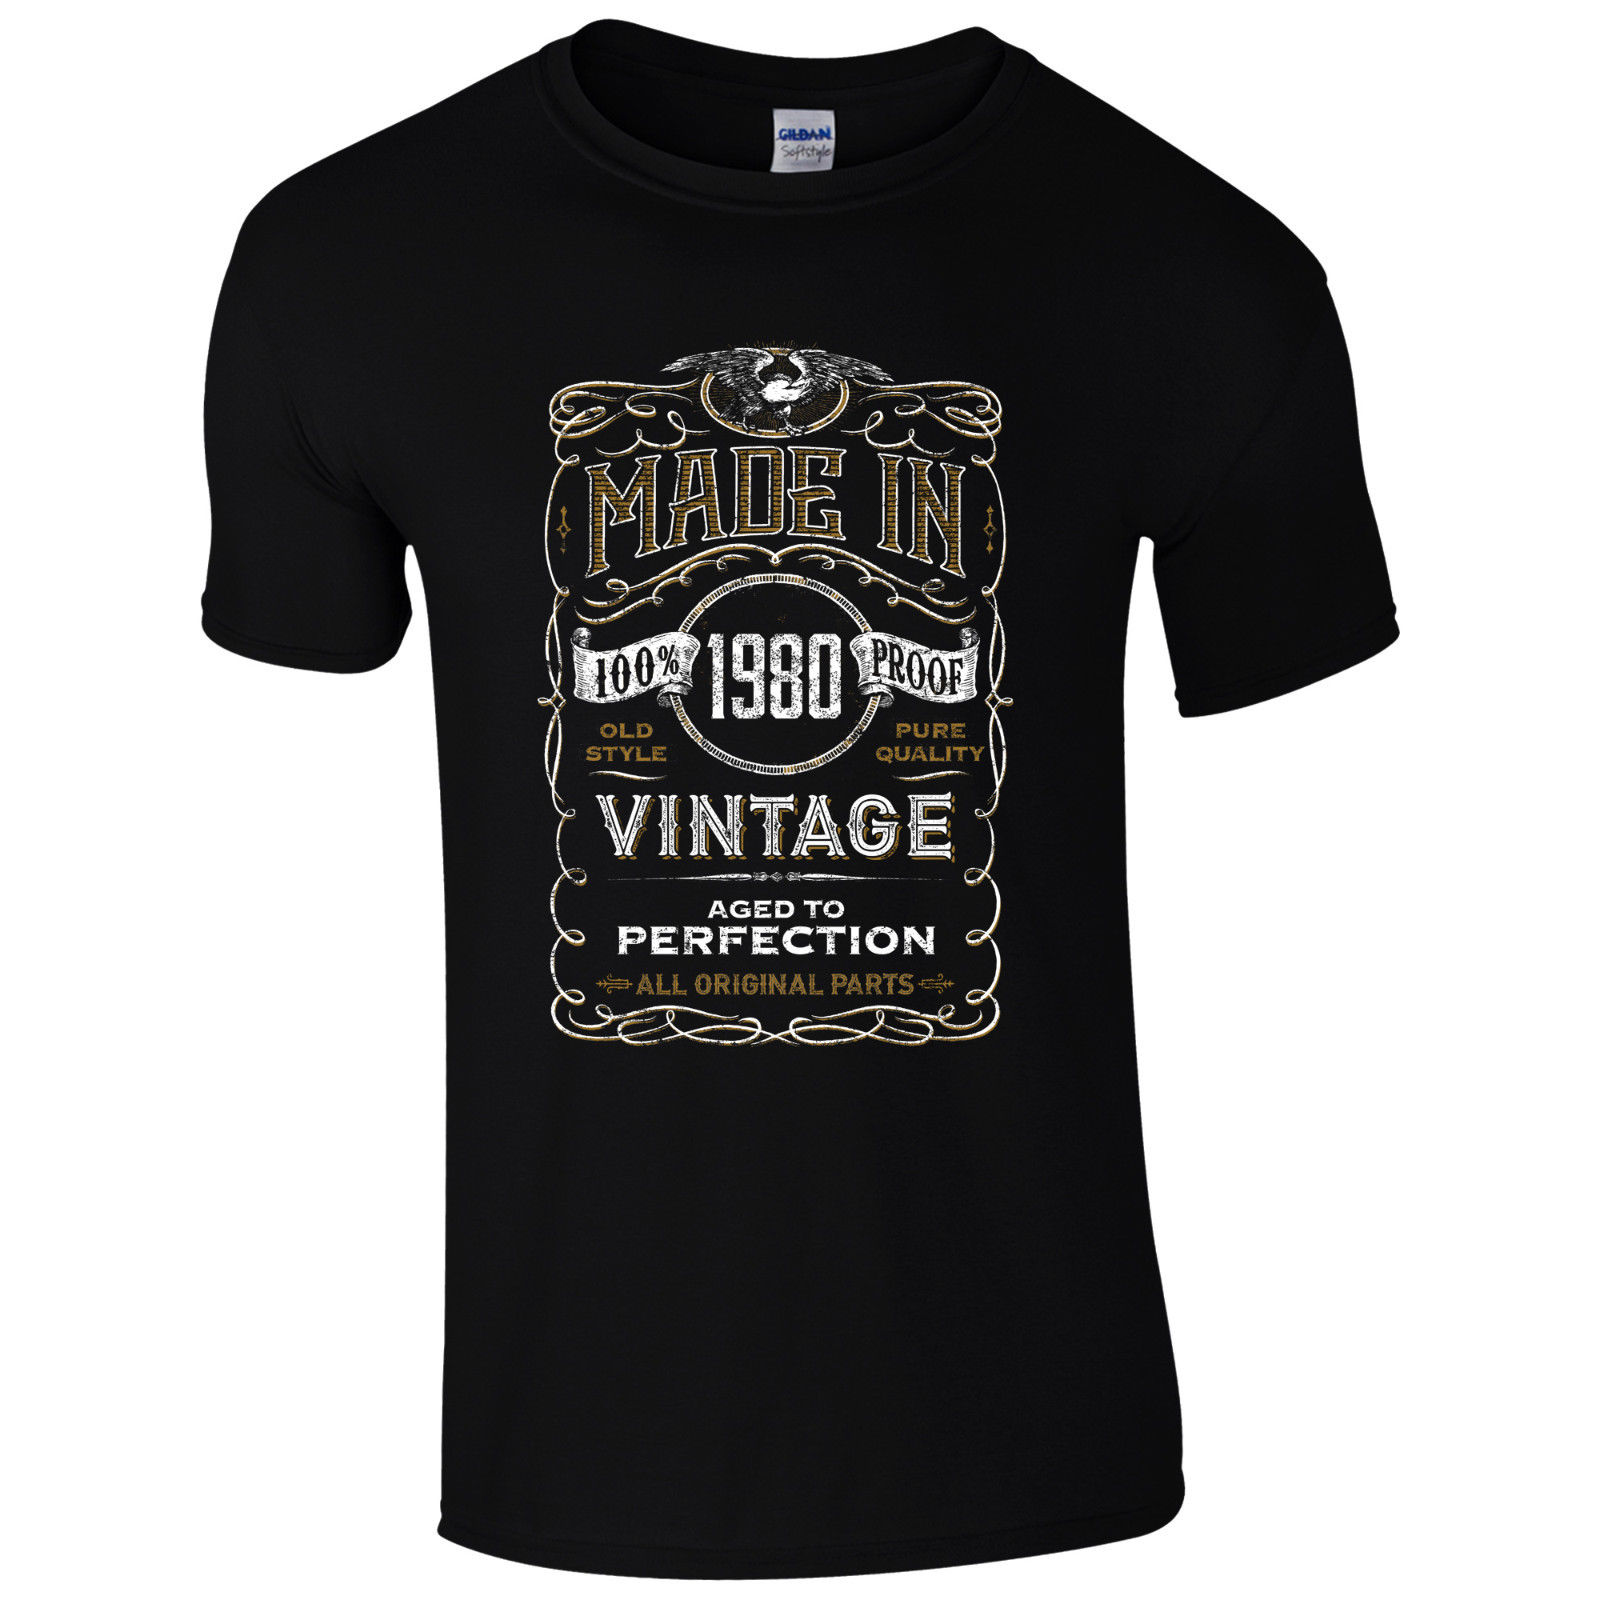 popularshop 38th Birthday Funny Shirt Vintage 1980 Men Women T Shirt